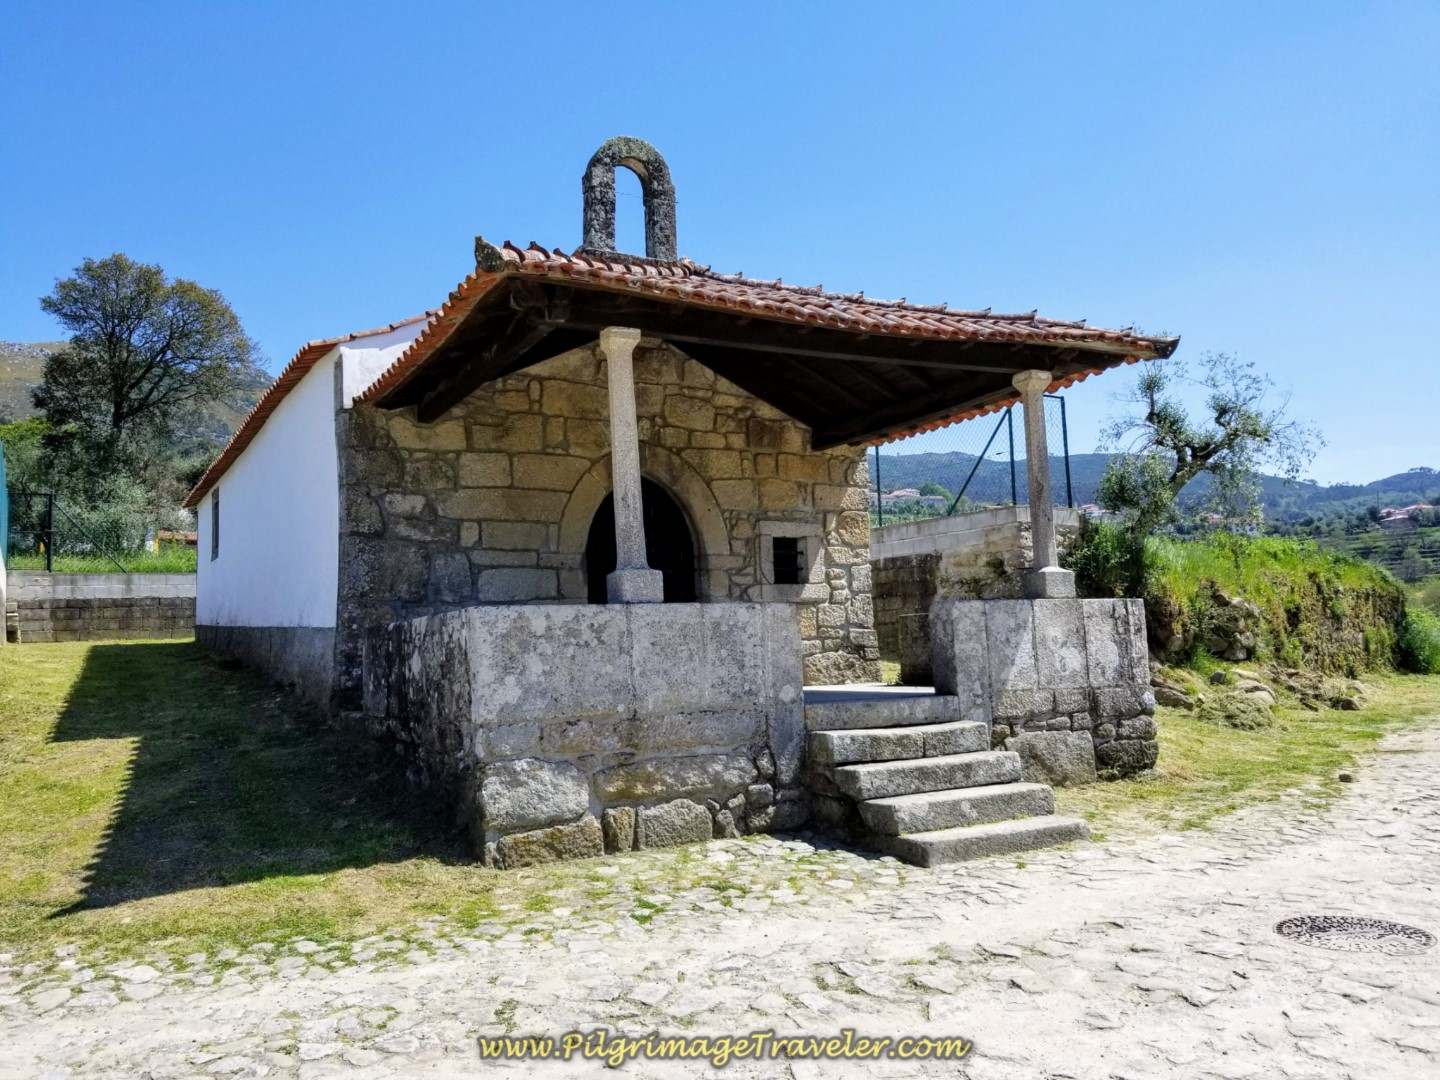 Quaint Chapel on the Caminho de Casais in Facha on day seventeen on the Central Route of the Portuguese Camino